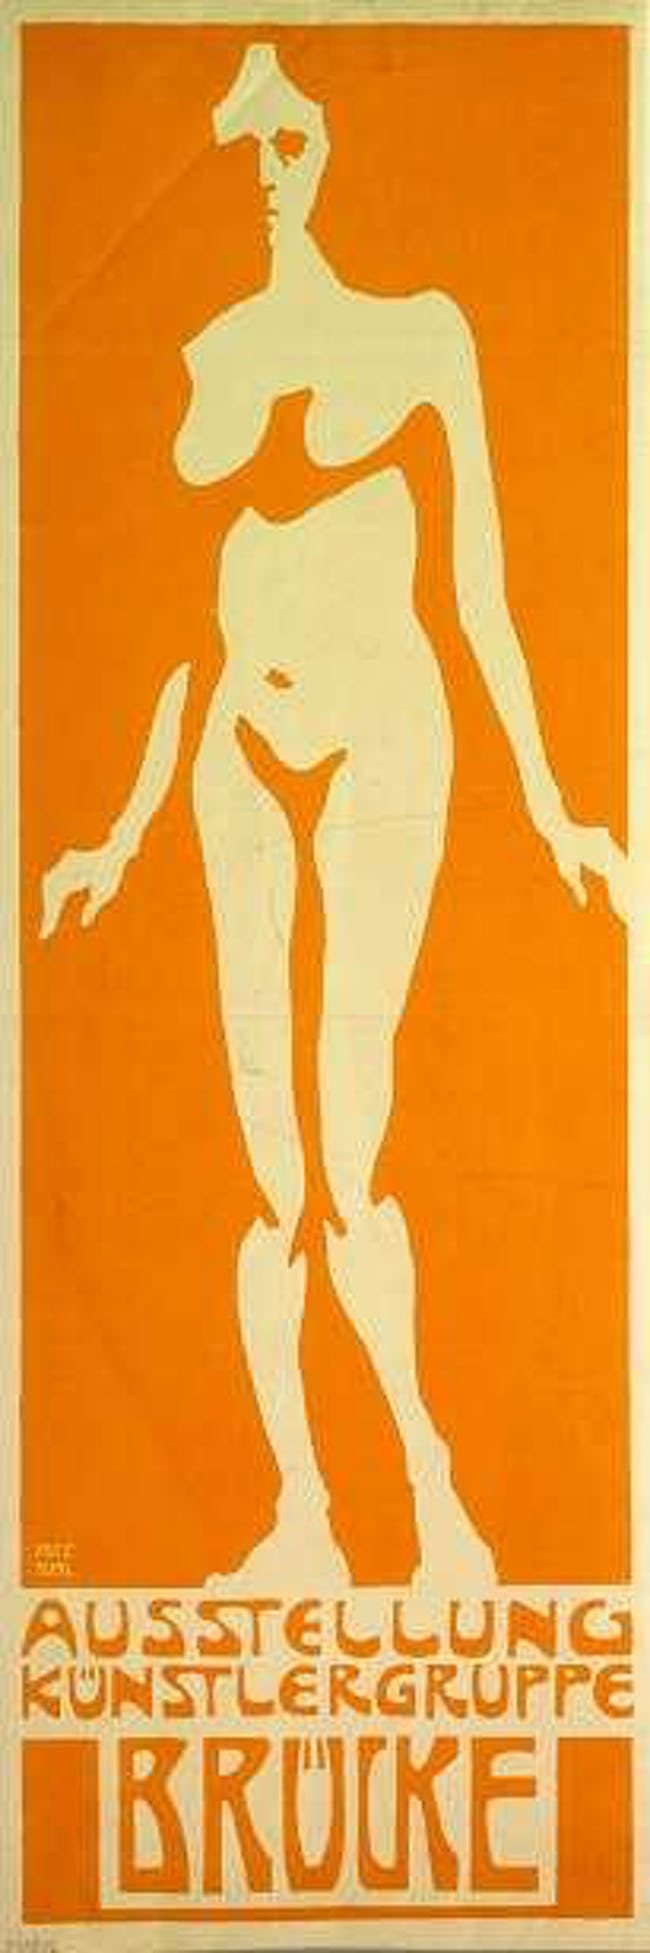 expressionism poster by Fritz Bleyl